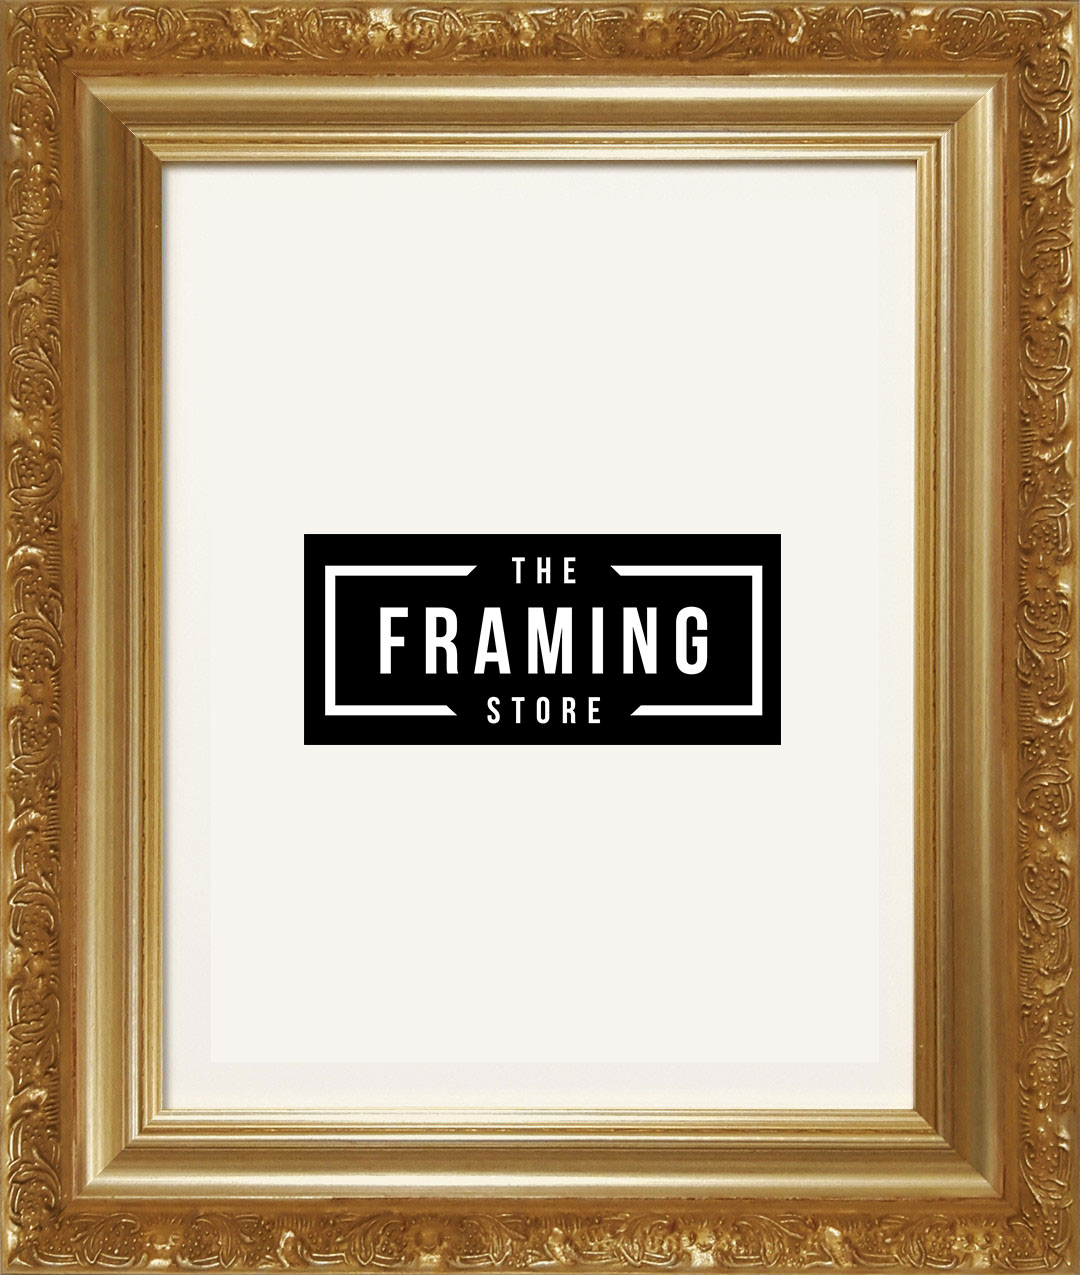 Australian made 8x10 Gold coloured fancy frame (203mm x 254mm)